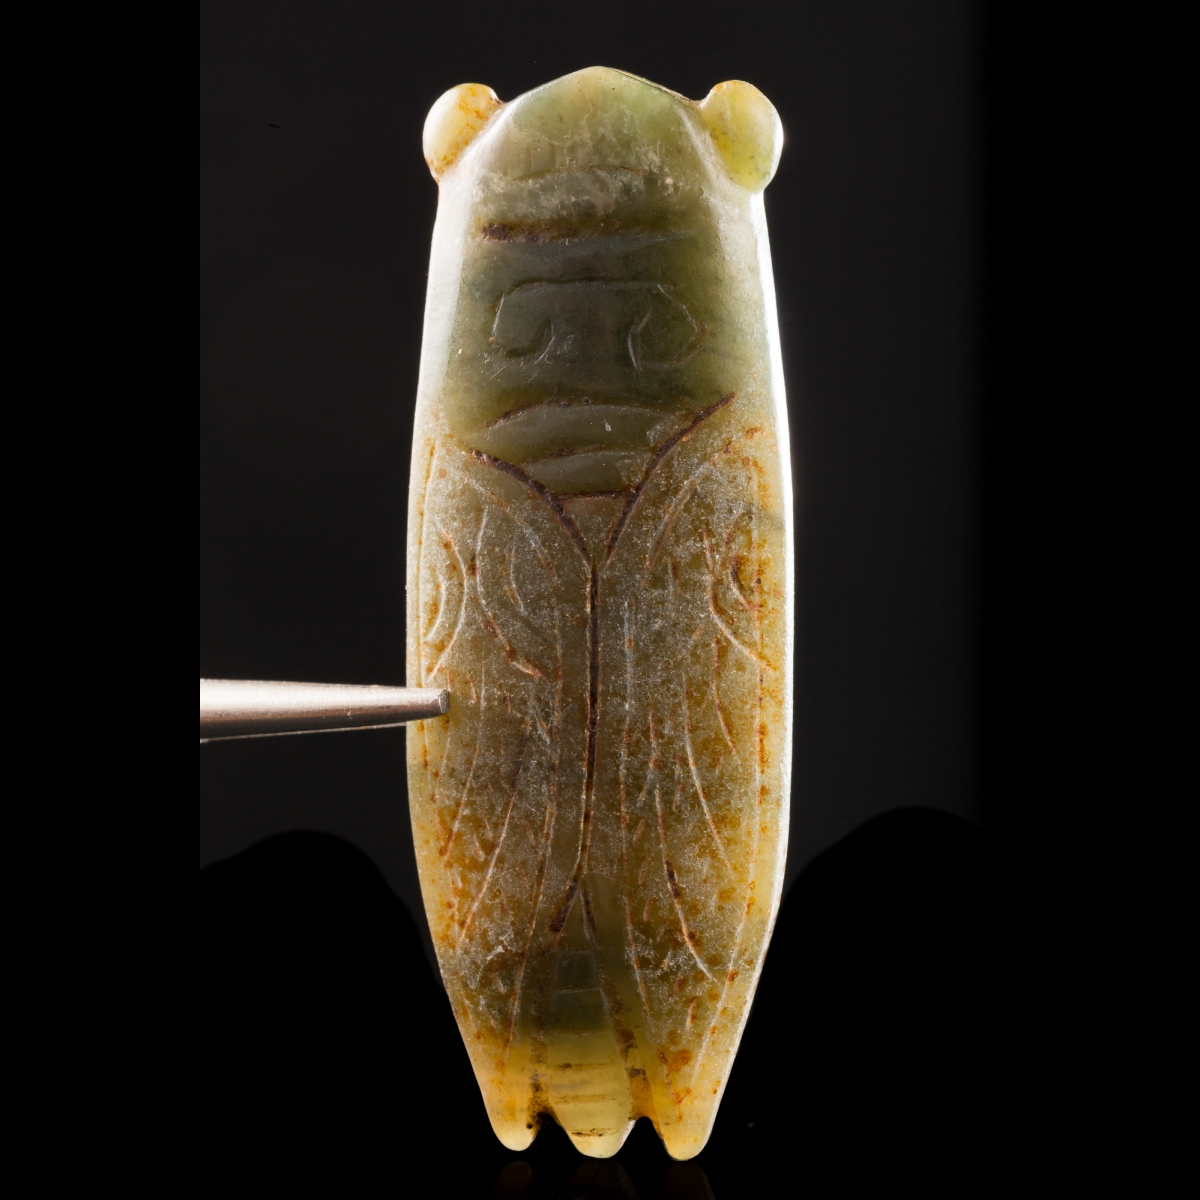 Photo of cicada-in-jade-china-zhou-han-dynasty-galerie-golconda-specialist-in-ancient-jades-museum-quality